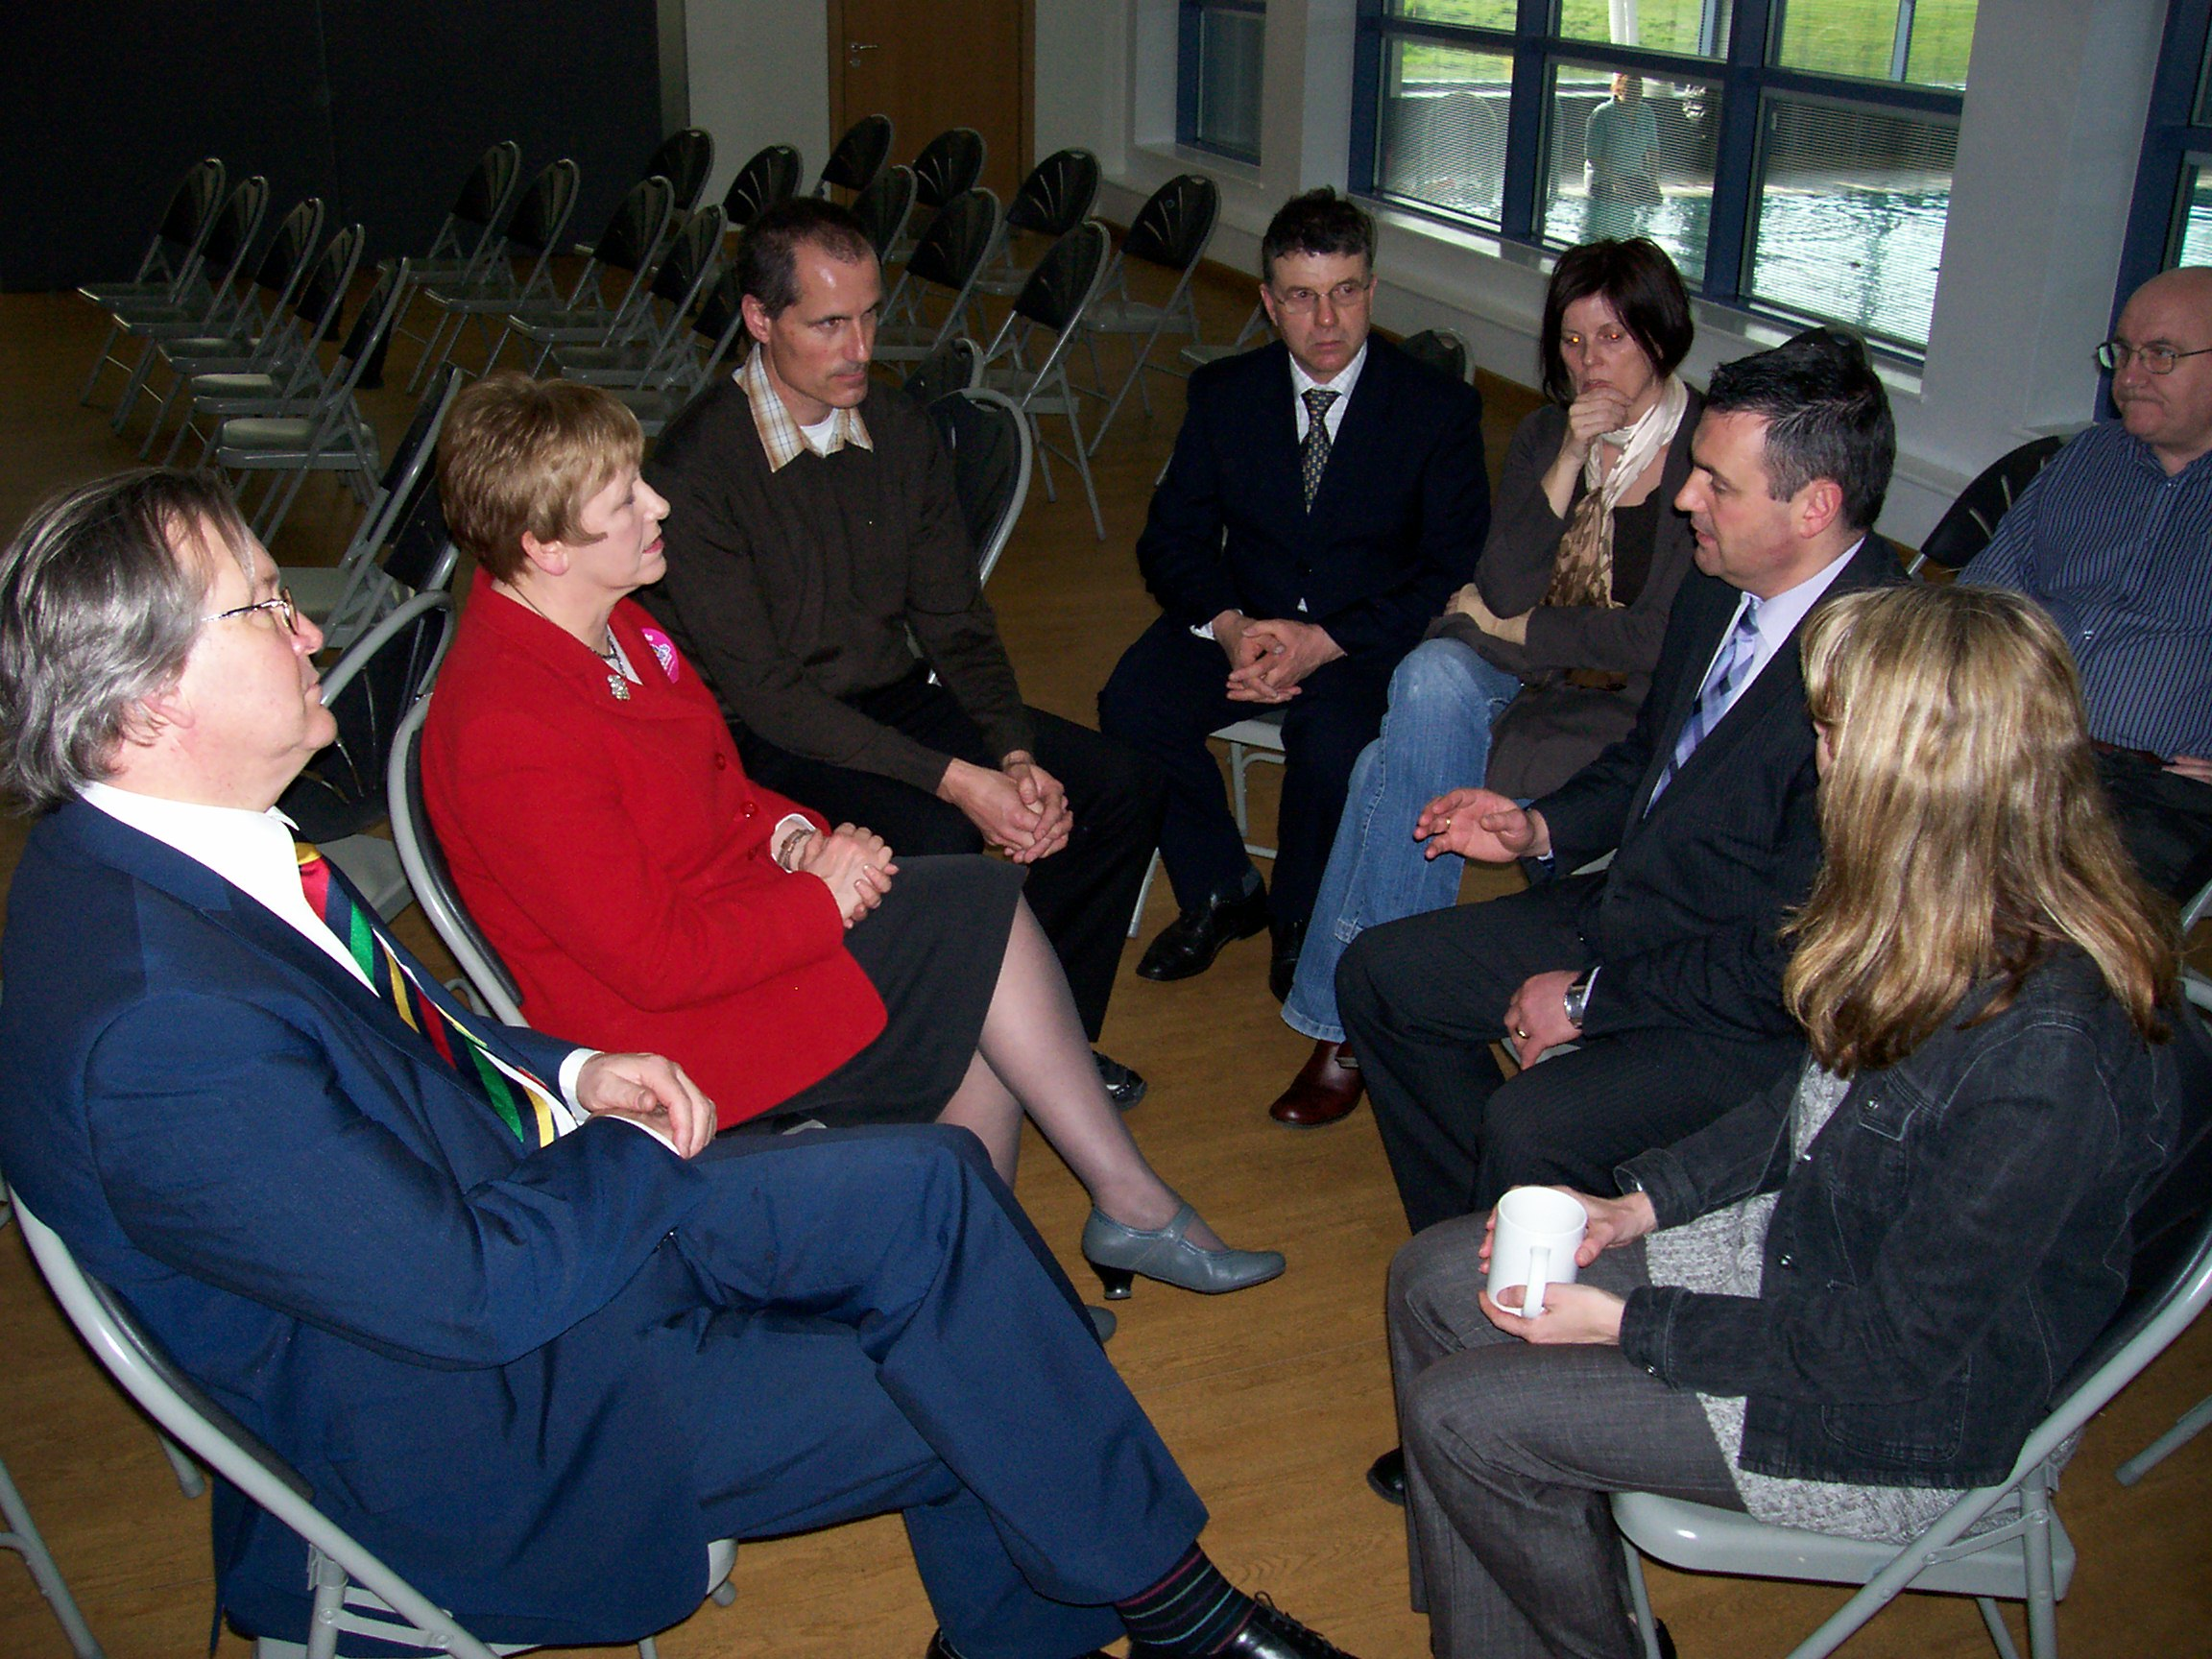 Labour's Shadow Minister for Communities and Local Government Helen Jones MP with Maghull business owner Steve Maxwell, Sefton Central Labour MP Bill Esterson, Sefton Council Labour leader Cllr Peter Dowd, Maghull Labour Action Team's Lynn Gatherer and Cllr Steve Kermode and Maghull Town Councillor Gwen Kermode.